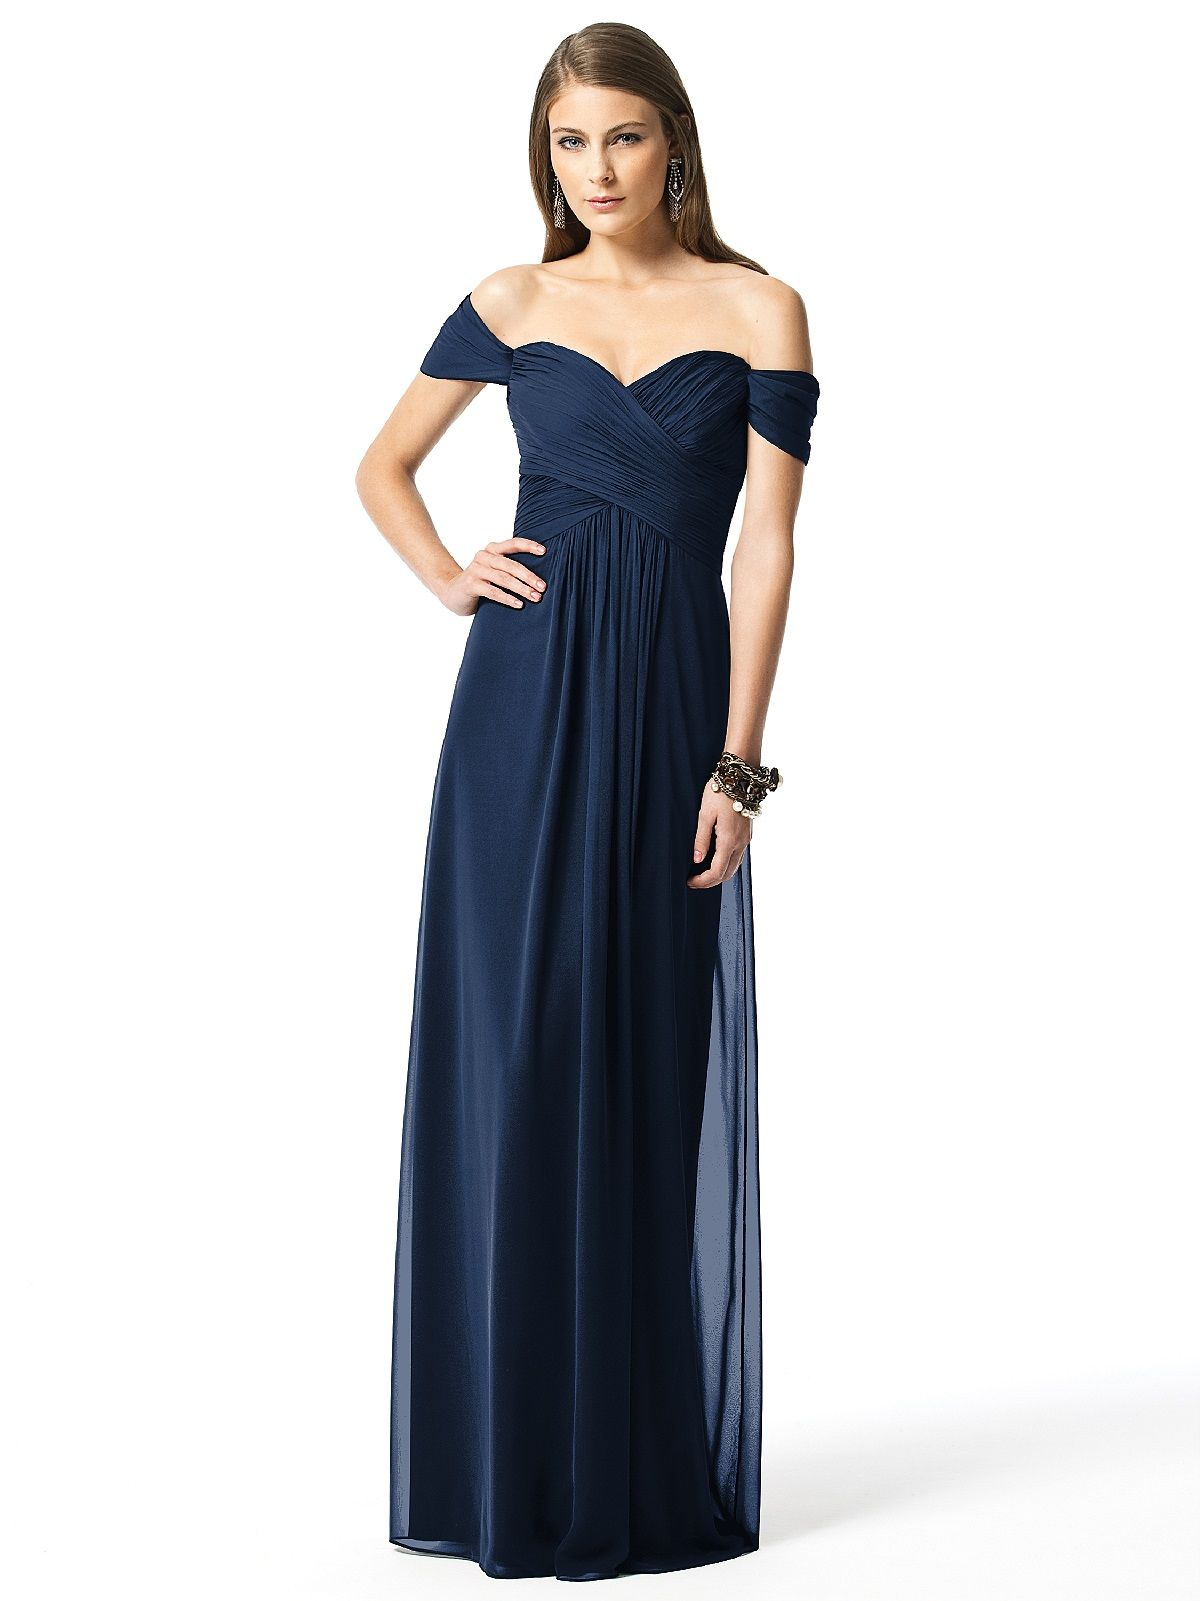 Dessy collection style bodice empire and shoulder